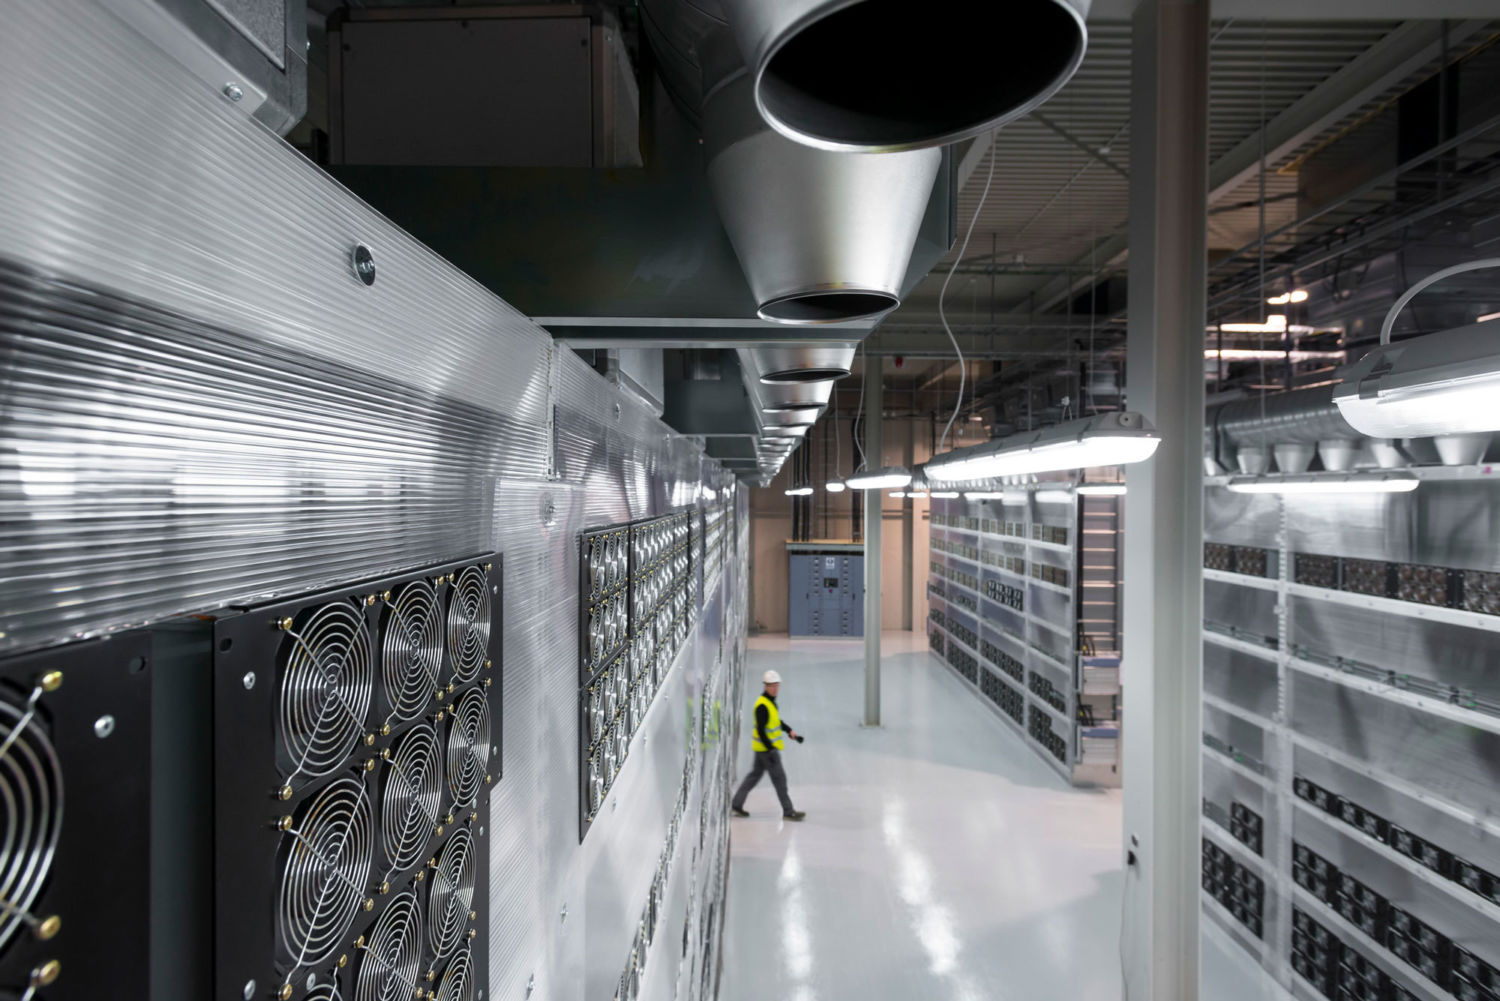 Energy Hogs: Can World's Huge Data Centers Be Made More